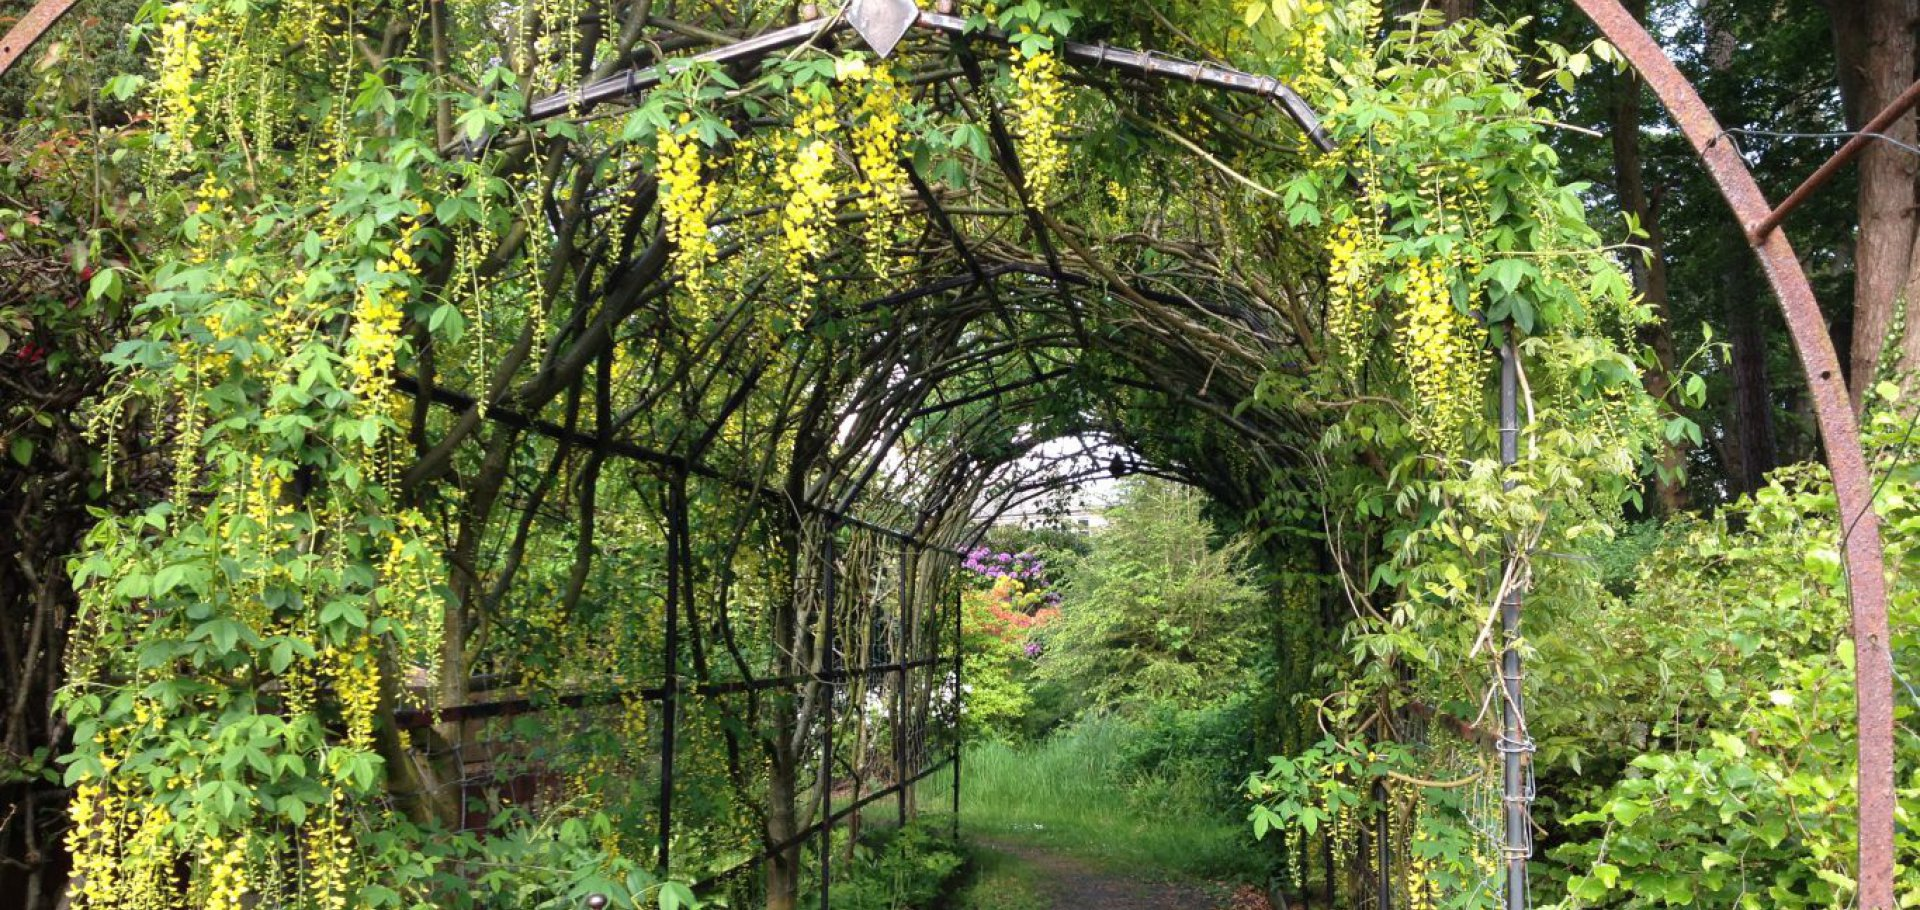 laburnum arch into walled garden